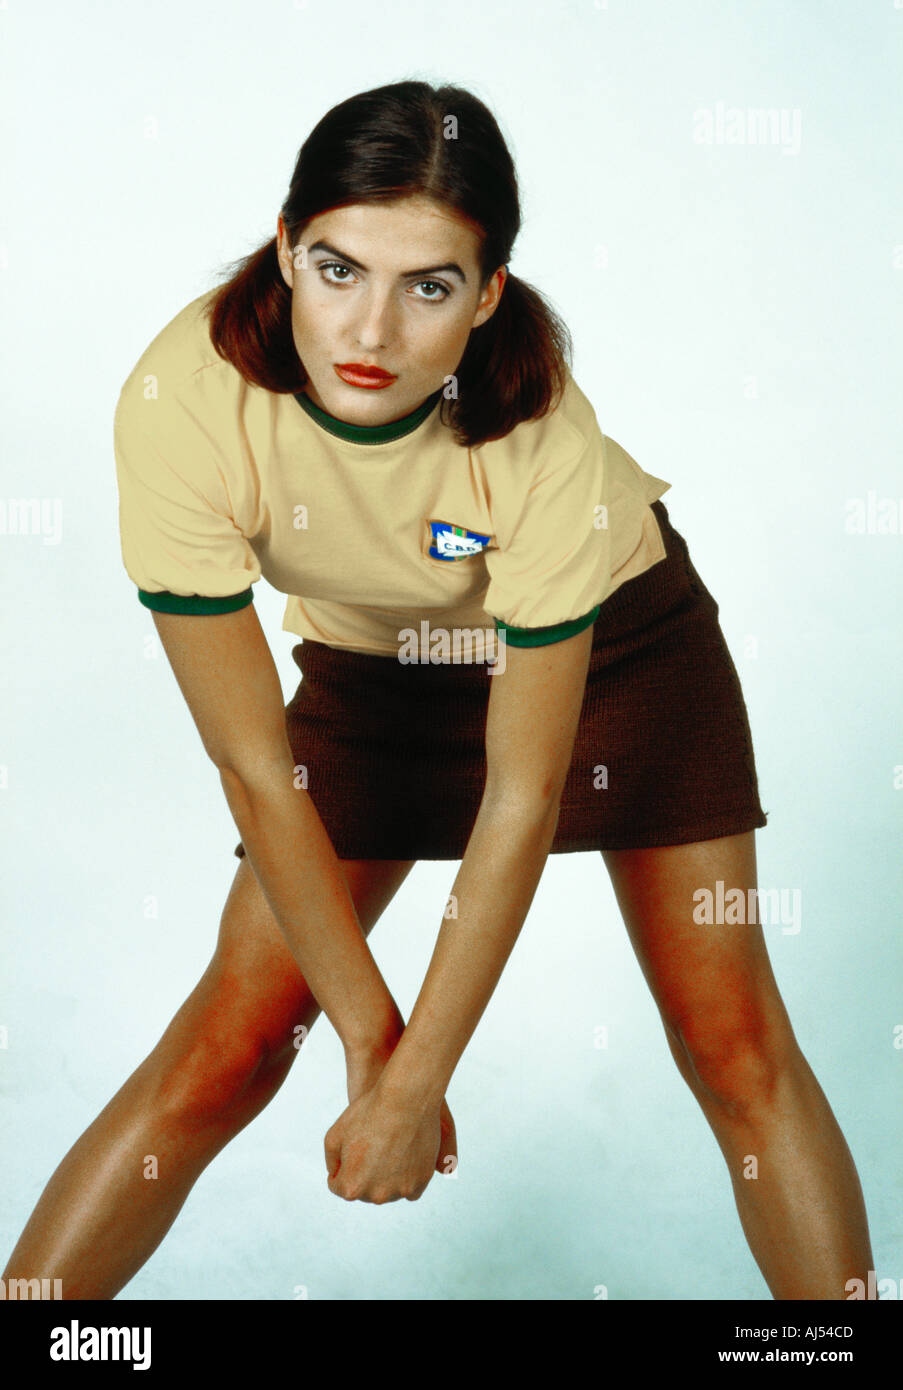 A young pretty girl in sporty dress poses for the camera - Stock Image